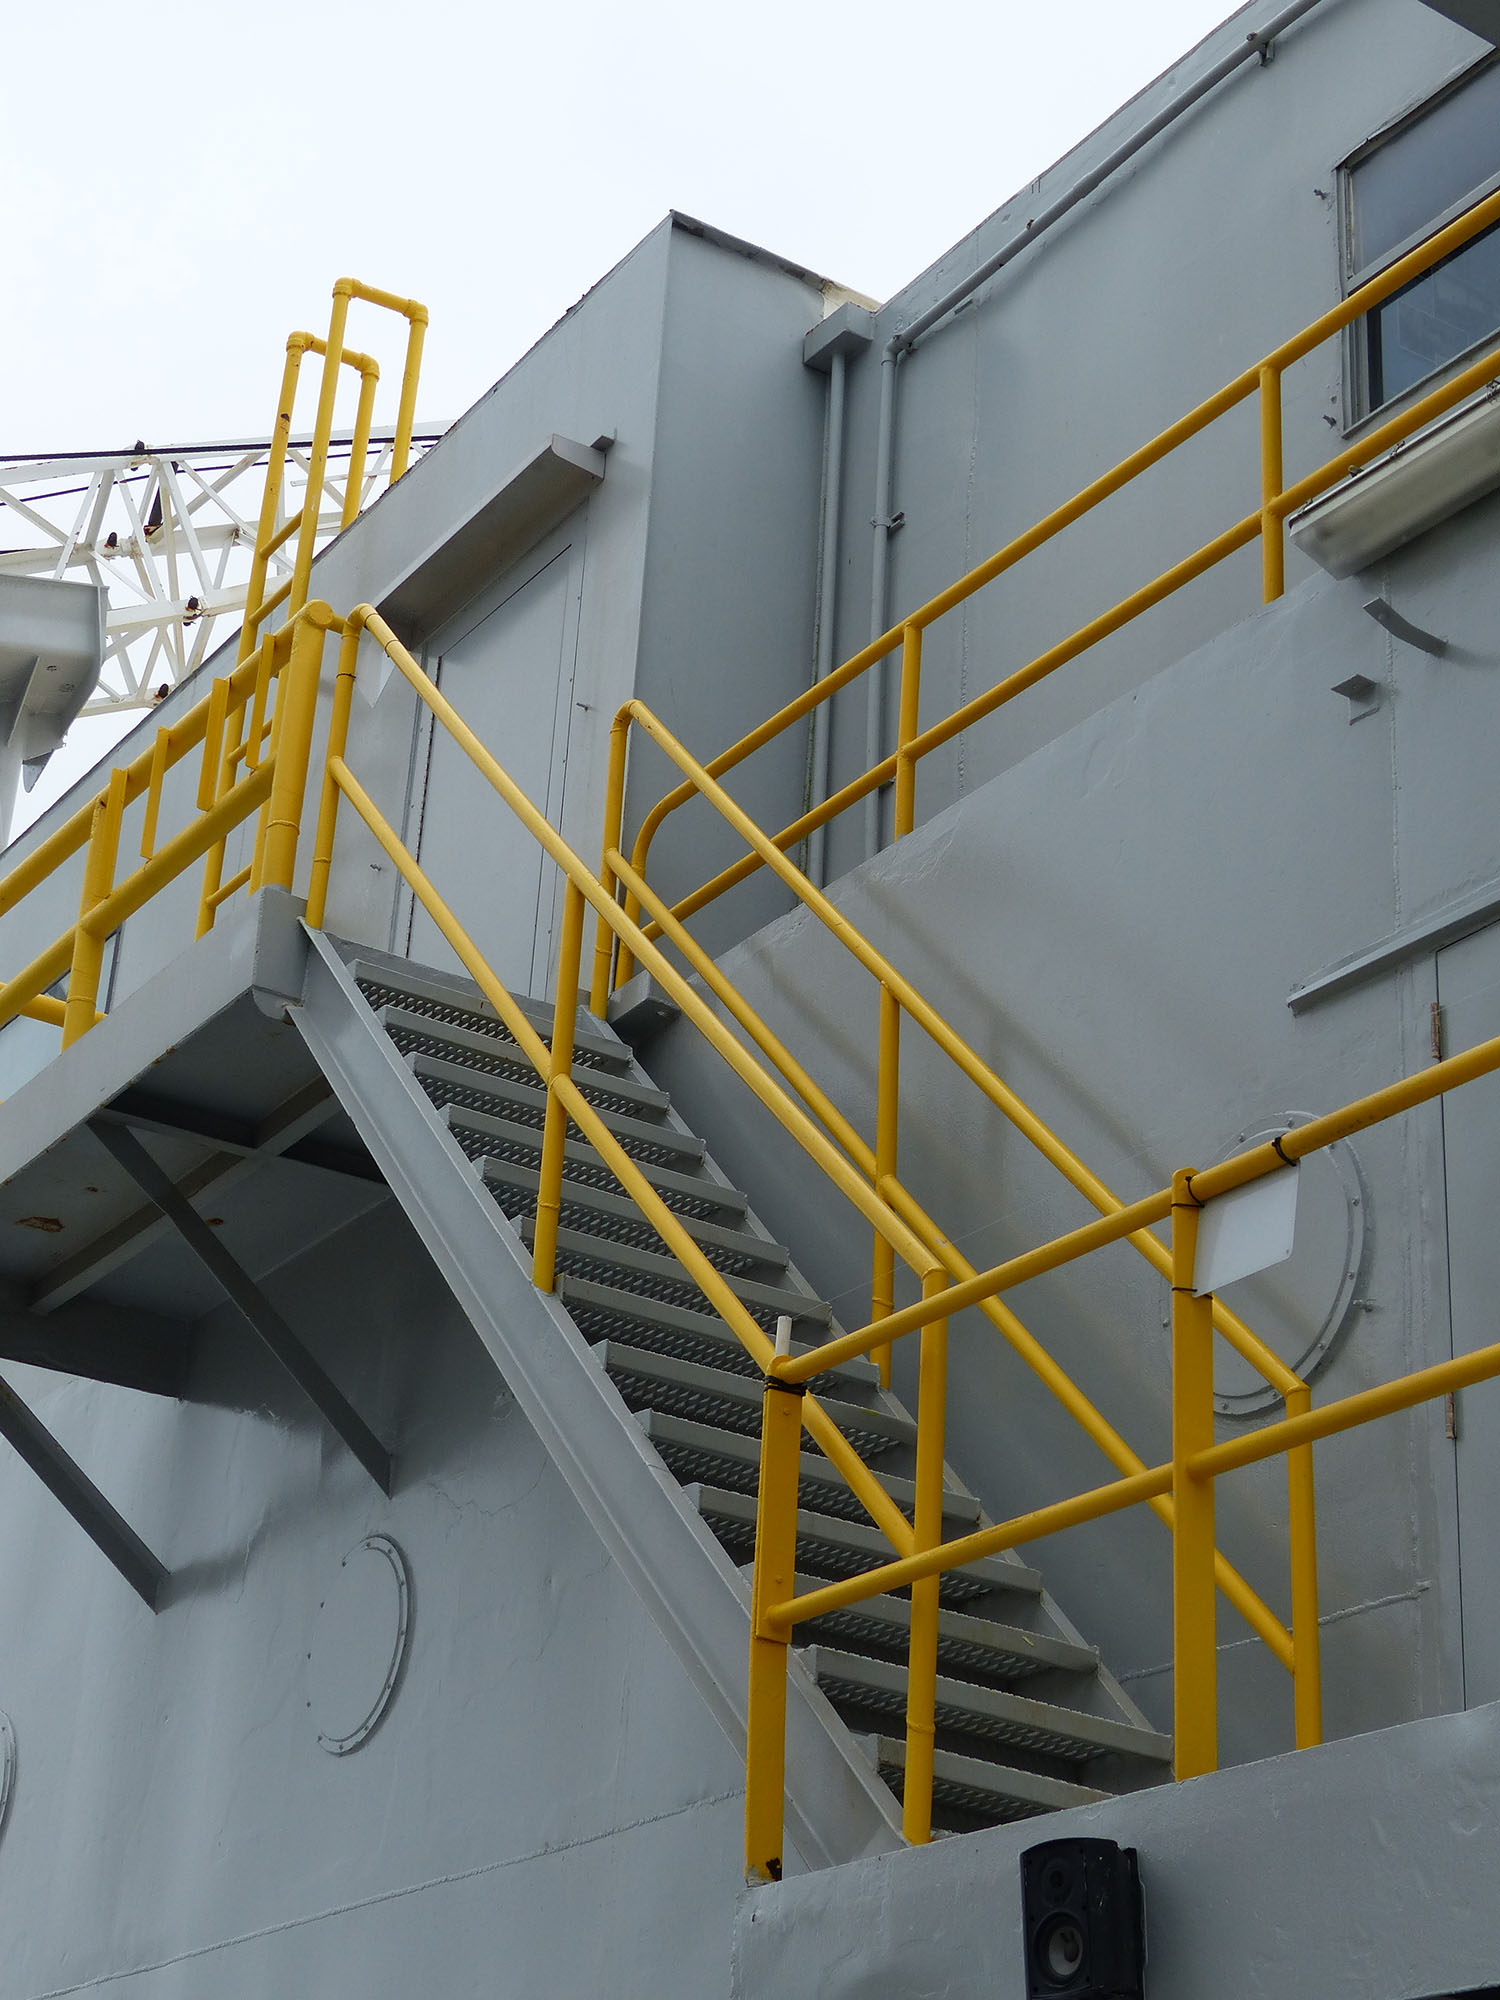 Ladders and handrails